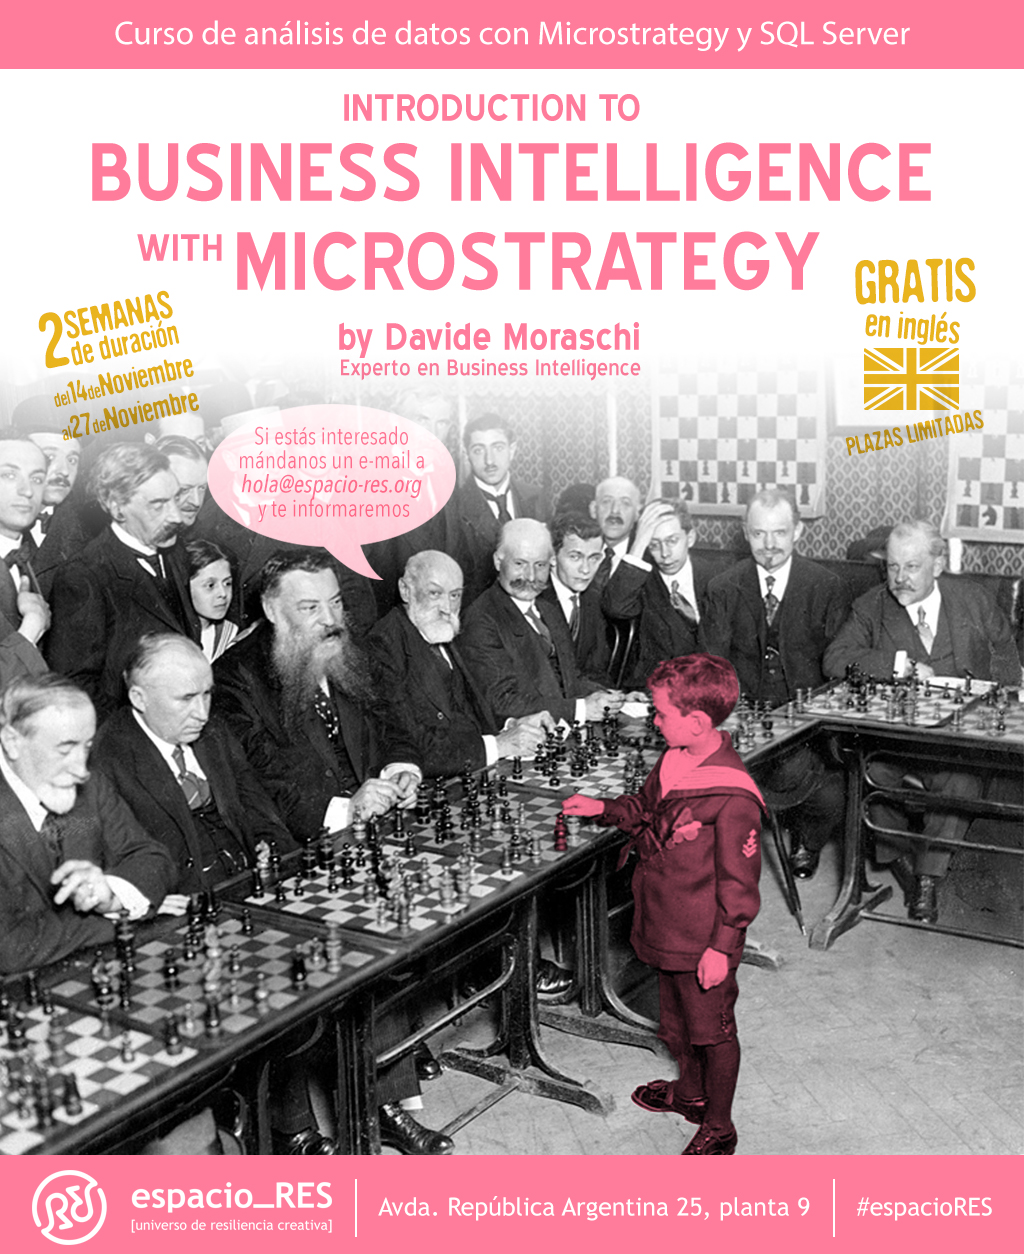 Free MicroStrategy training in Seville (students and unemployed only)